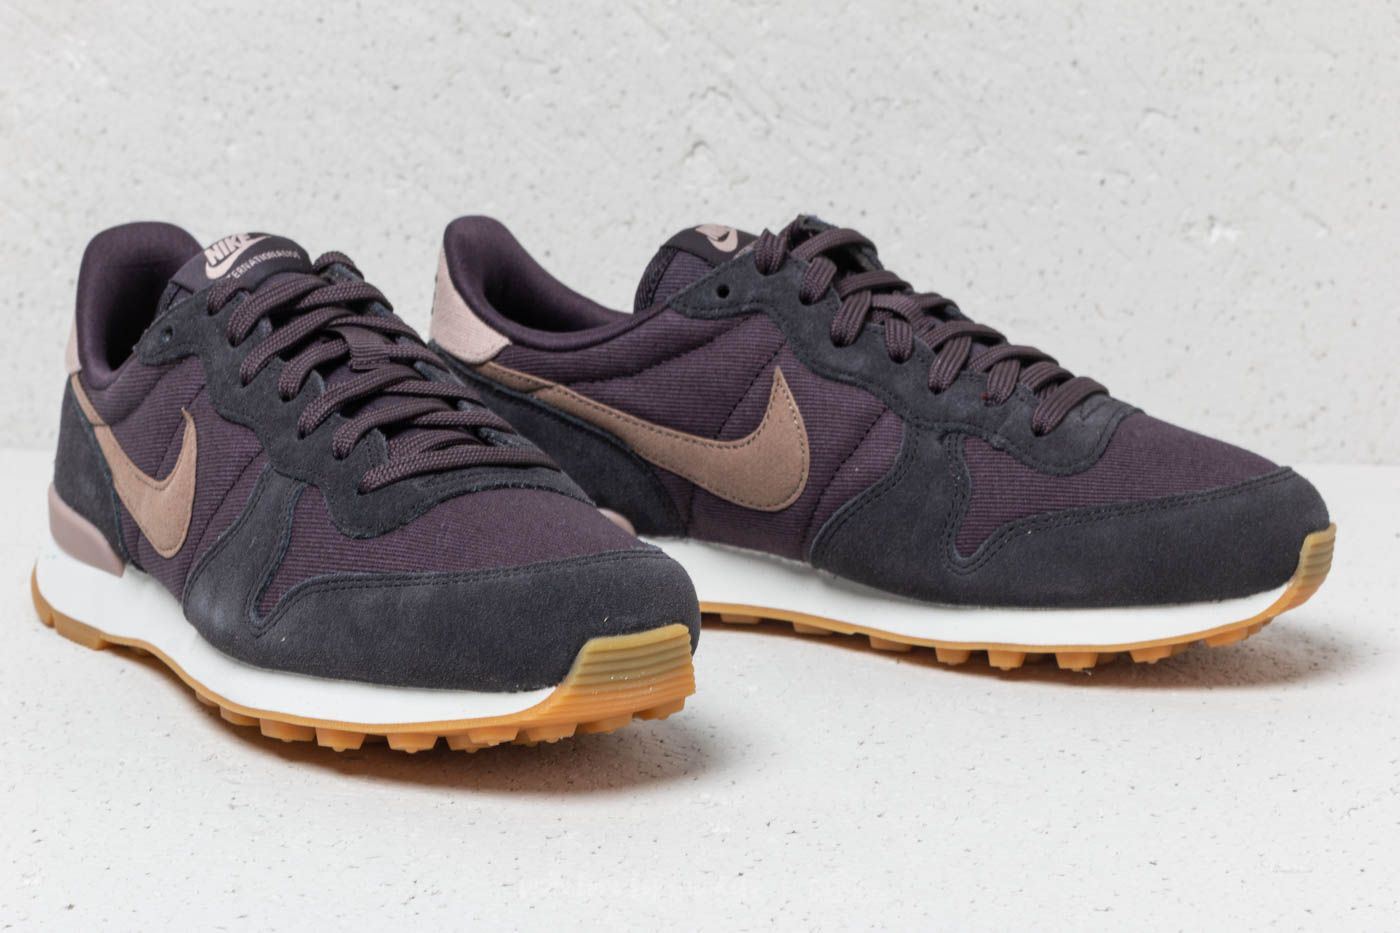 official images sports shoes new authentic Nike Internationalist WMNS Oil Grey/ Mink Brown | Footshop